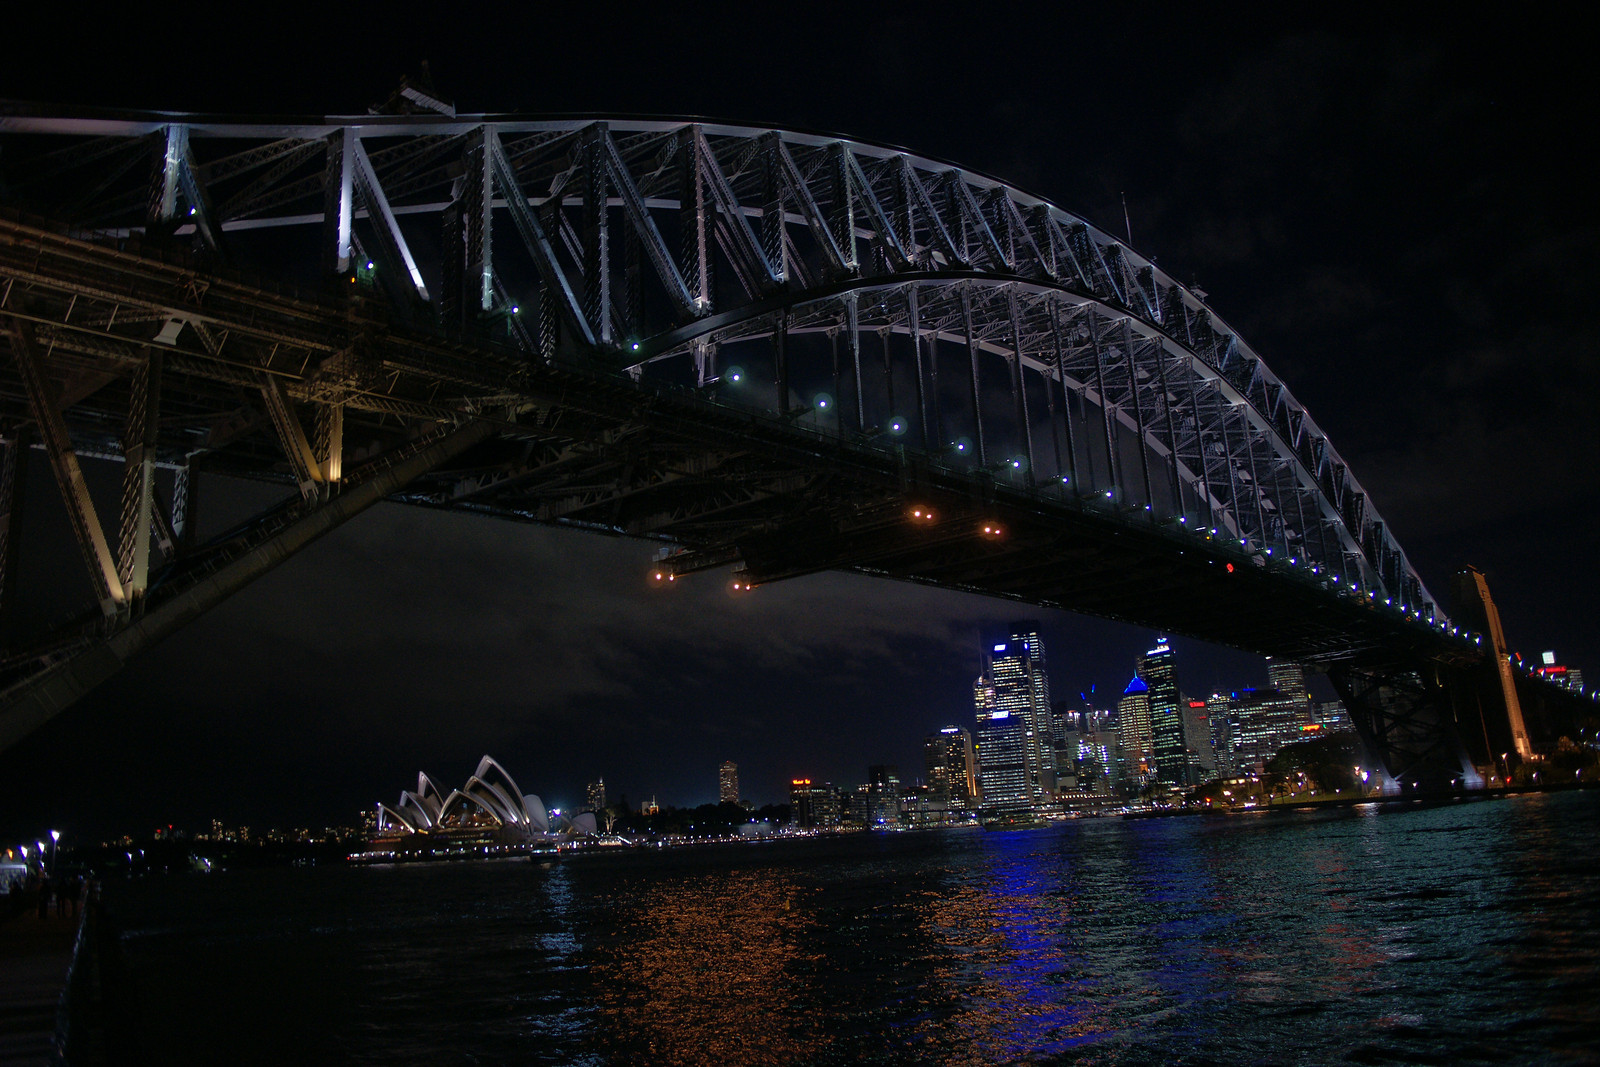 View underneath the Harbour Bridge (Sydney, Australia)